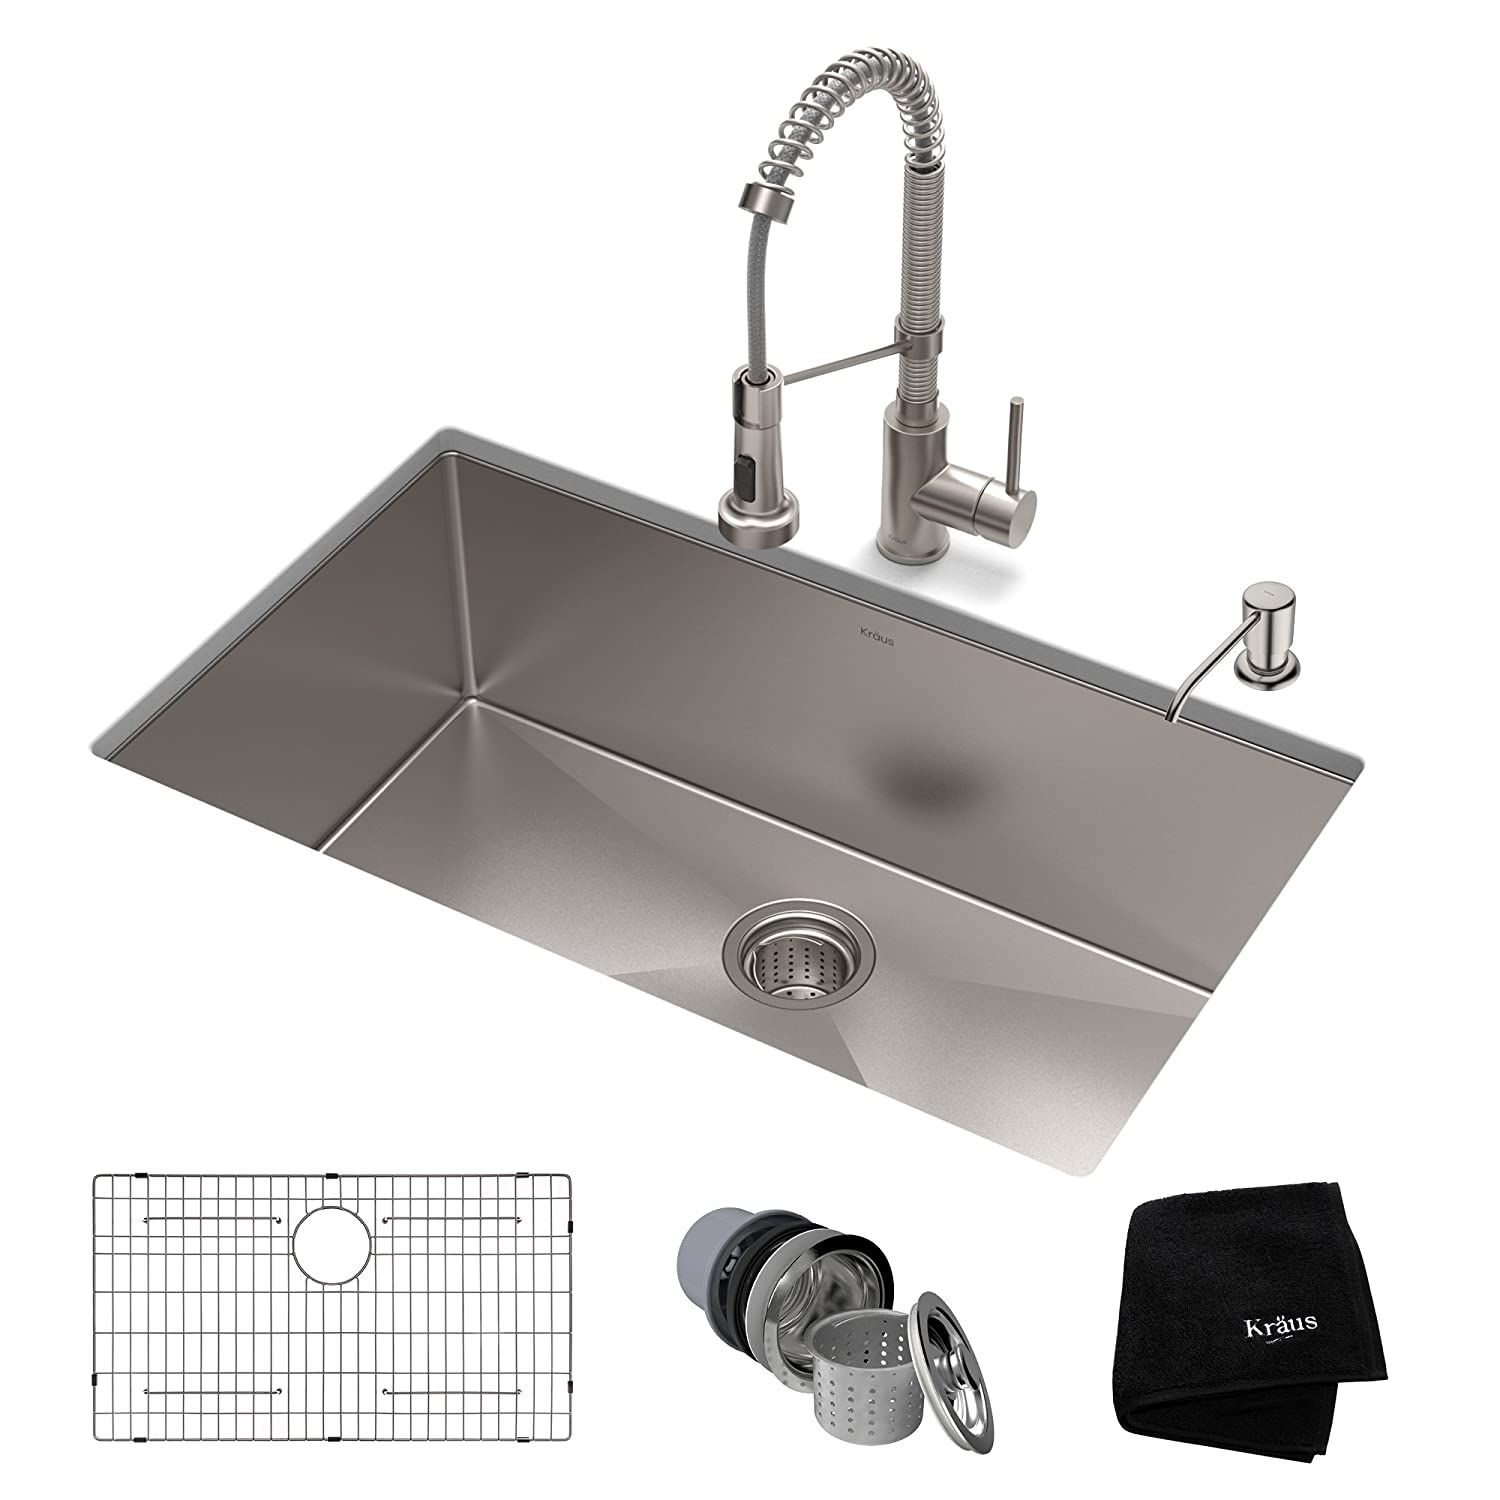 KRAUS KHU100-30-1610-53SS Set with Standart PRO Sink and Bolden Commercial Pull Faucet in Stainless Steel Kitchen Sink & Faucet Combo 30 inch